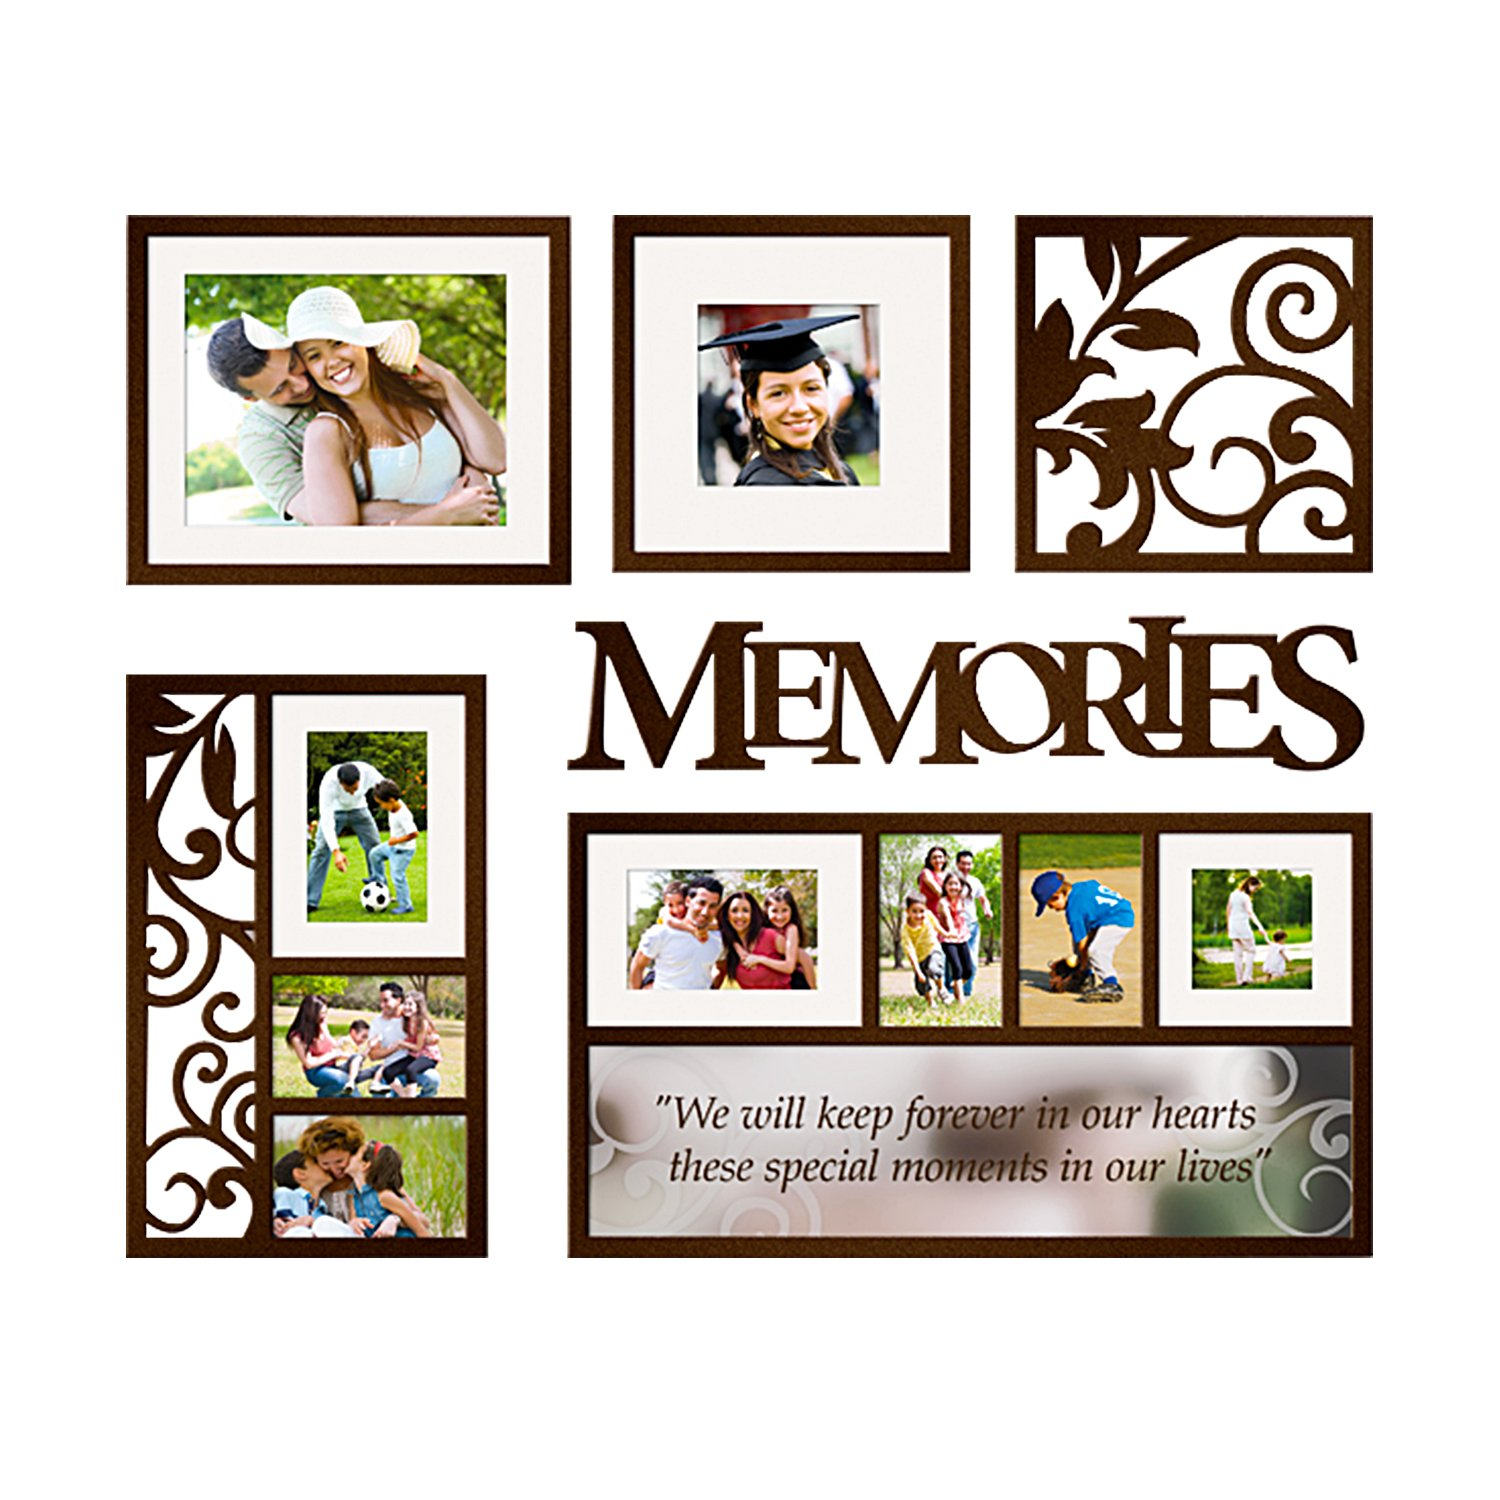 Hello Laura - Photo Frame Memory Theme Wall Hanging Picture Frame Gallery Collection Complete Set Decor Accessories Plaque for School Graduation Birthday Gift Family by Hello Laura